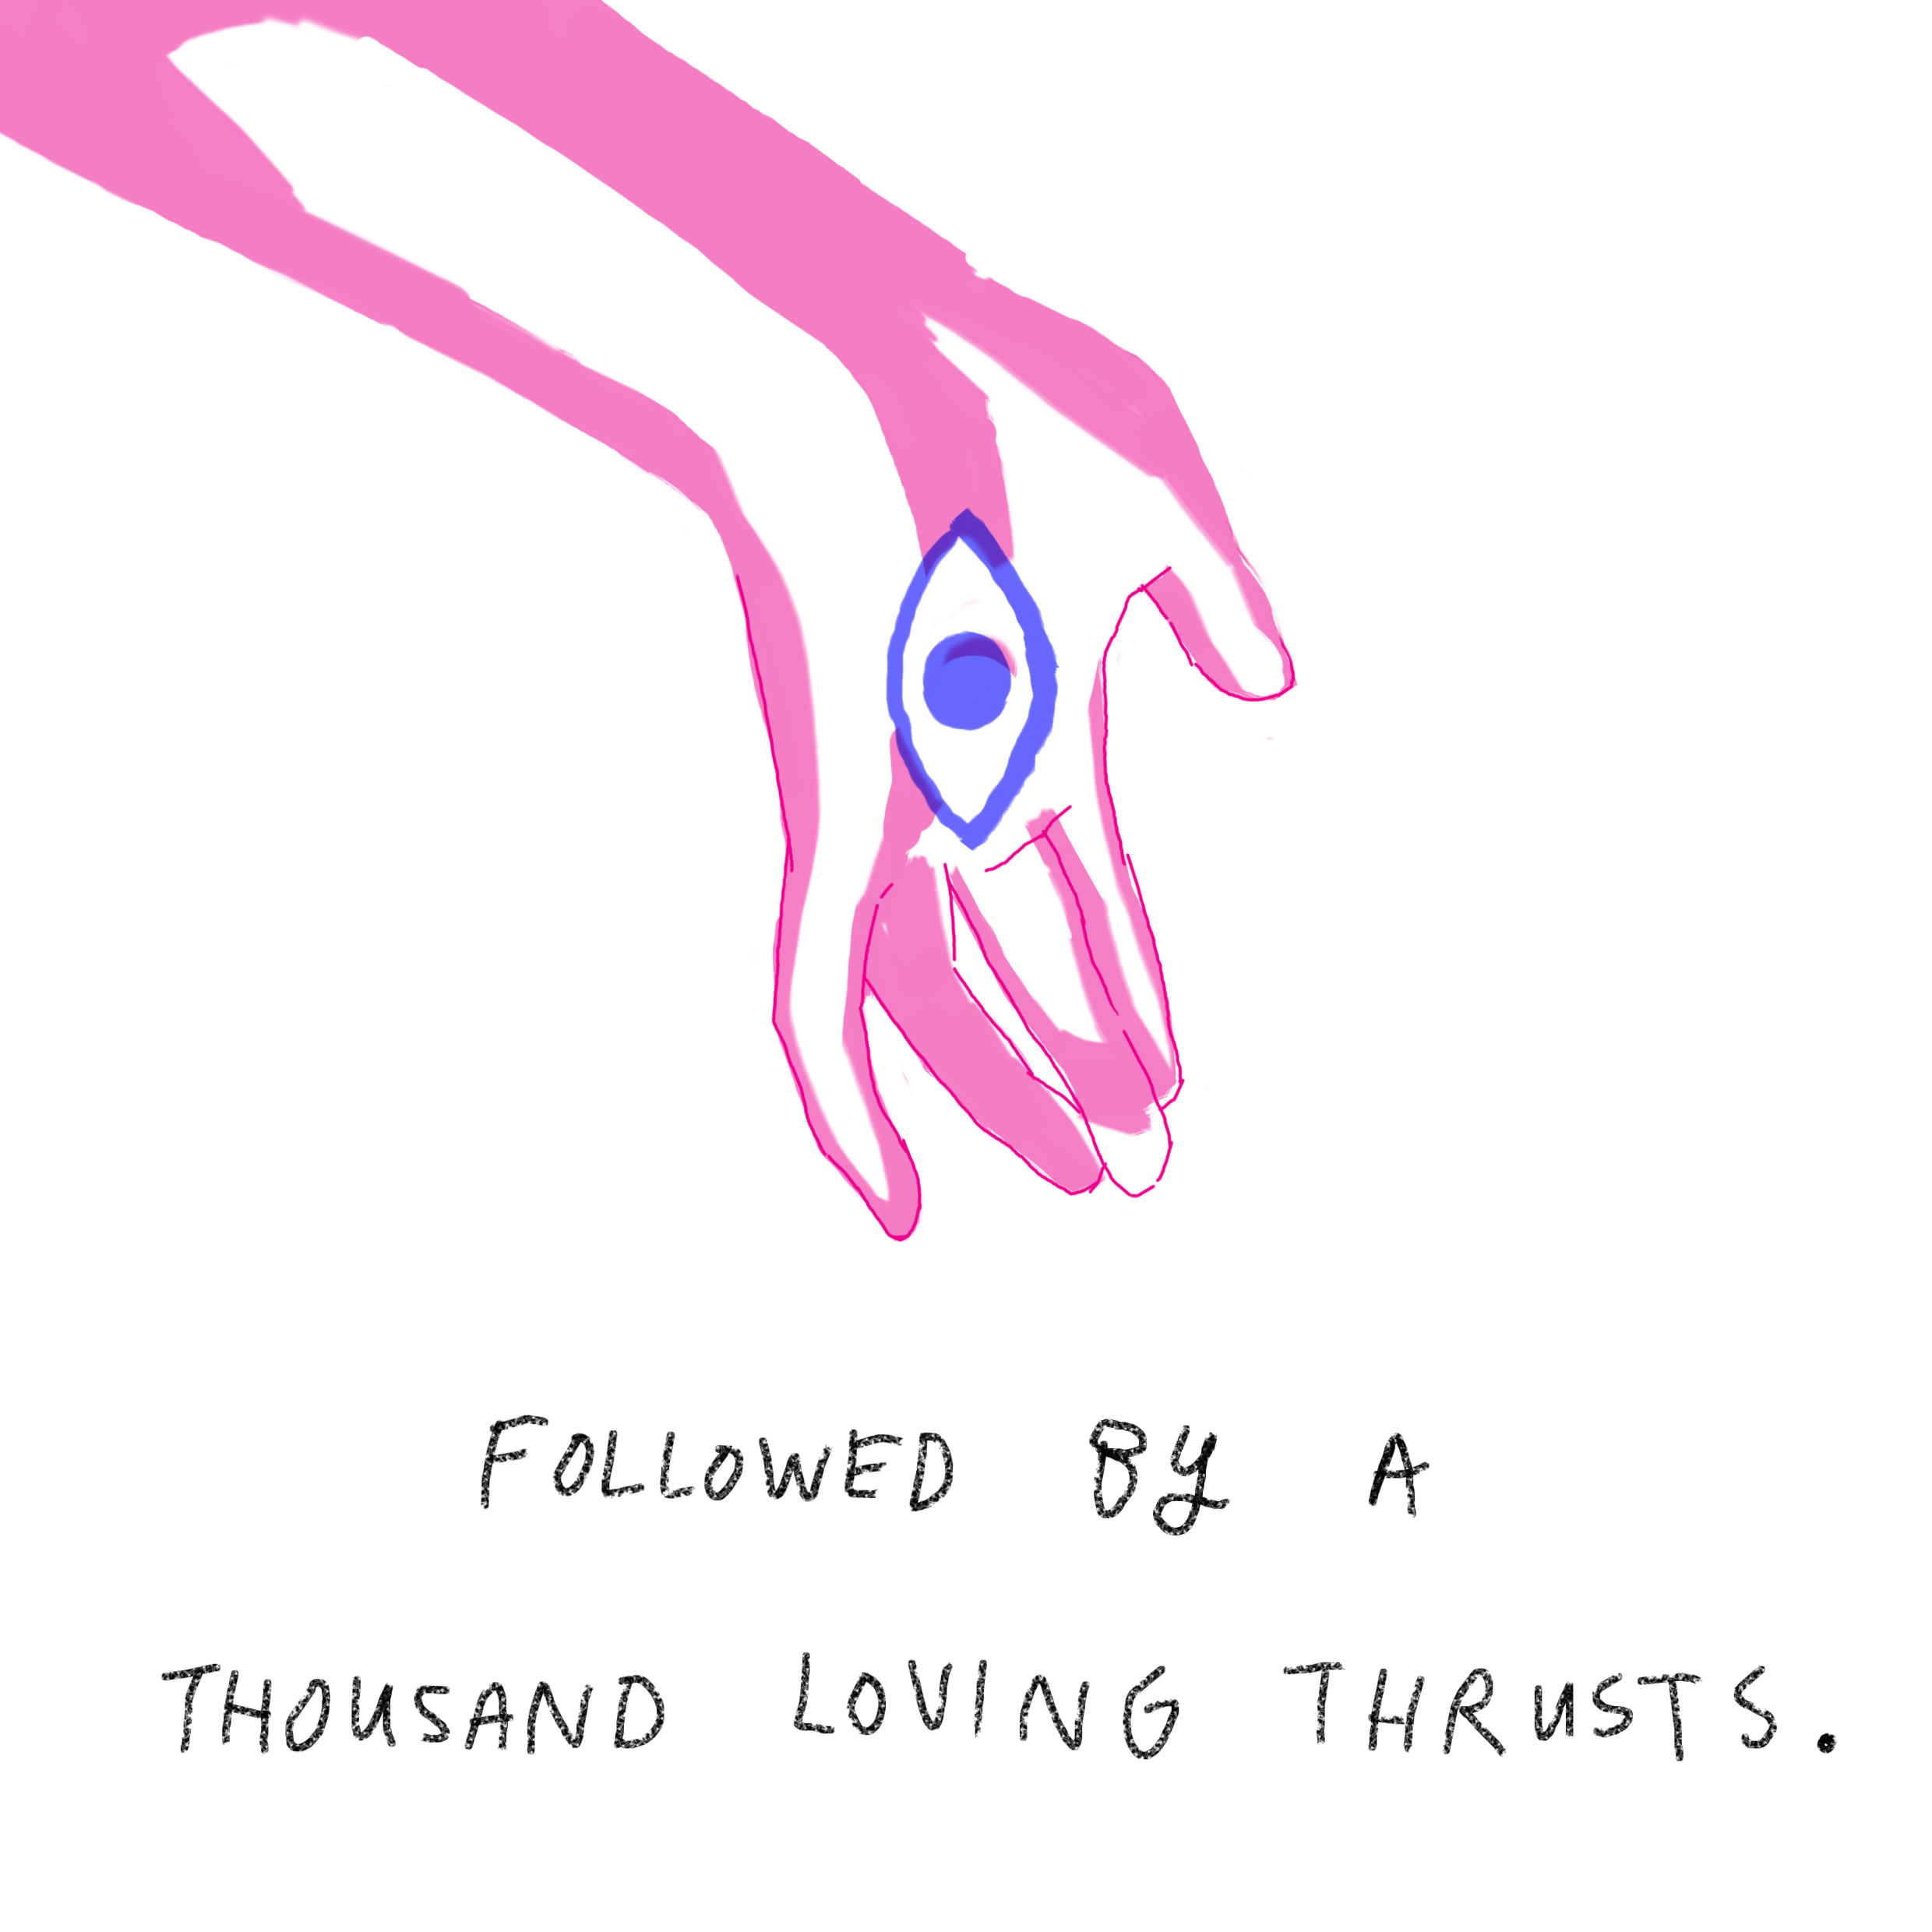 'followed by a thousand loving thrusts.'